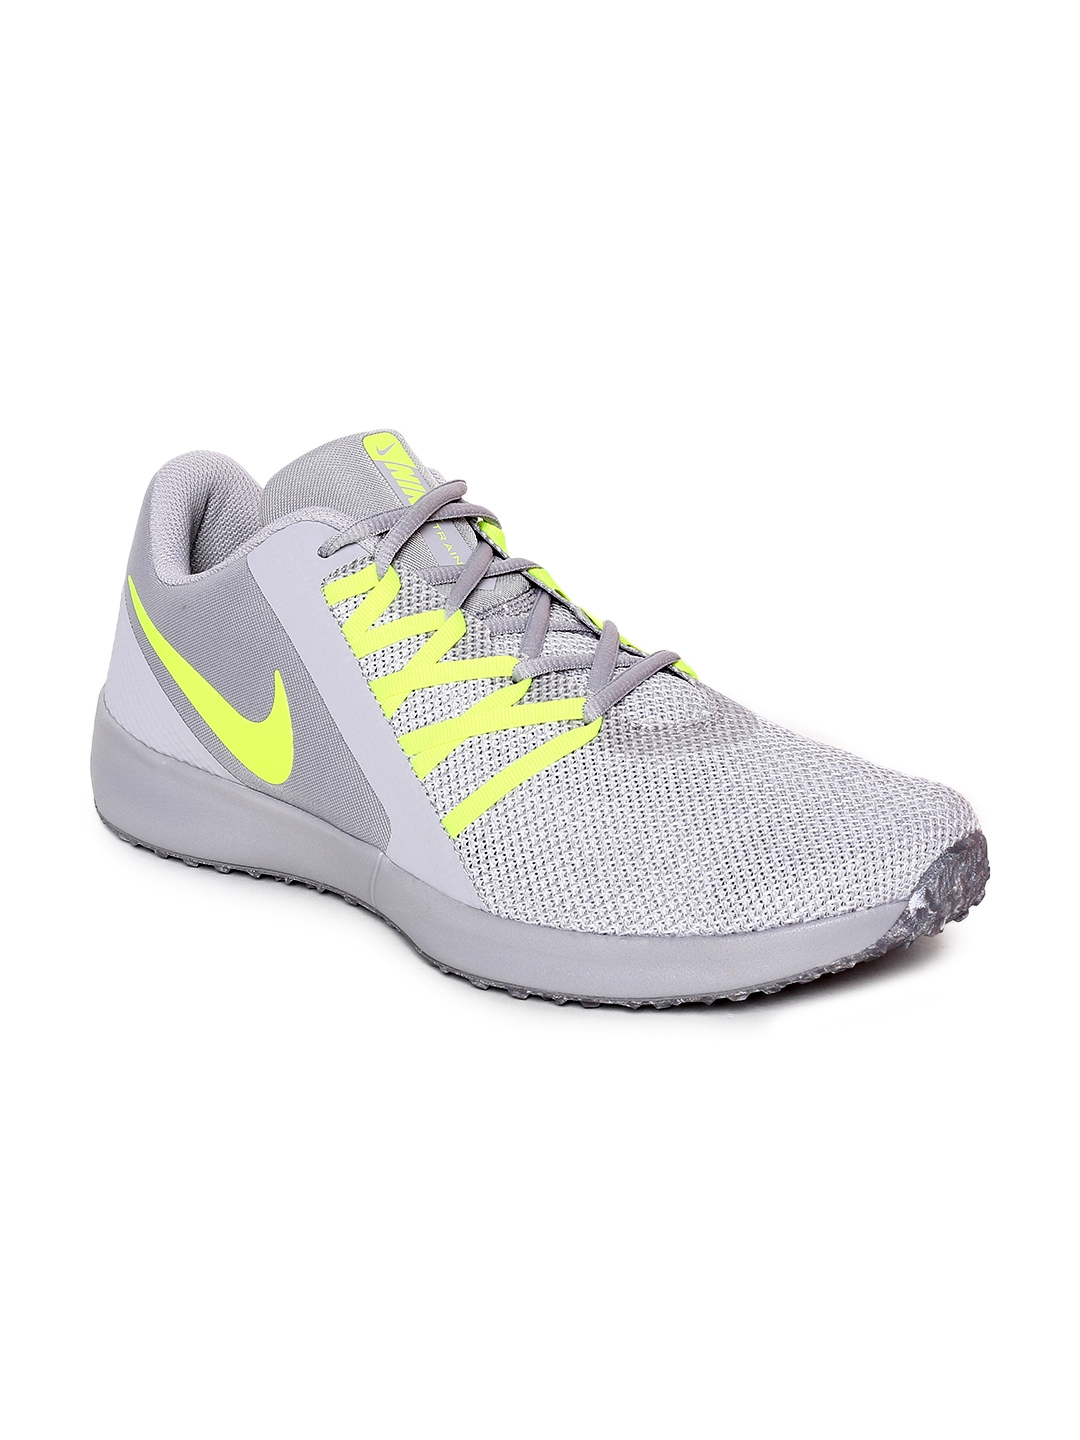 7dc91b52b6db Buy Nike Men Grey VARSITY COMPETE Training Shoes - Sports Shoes for ...